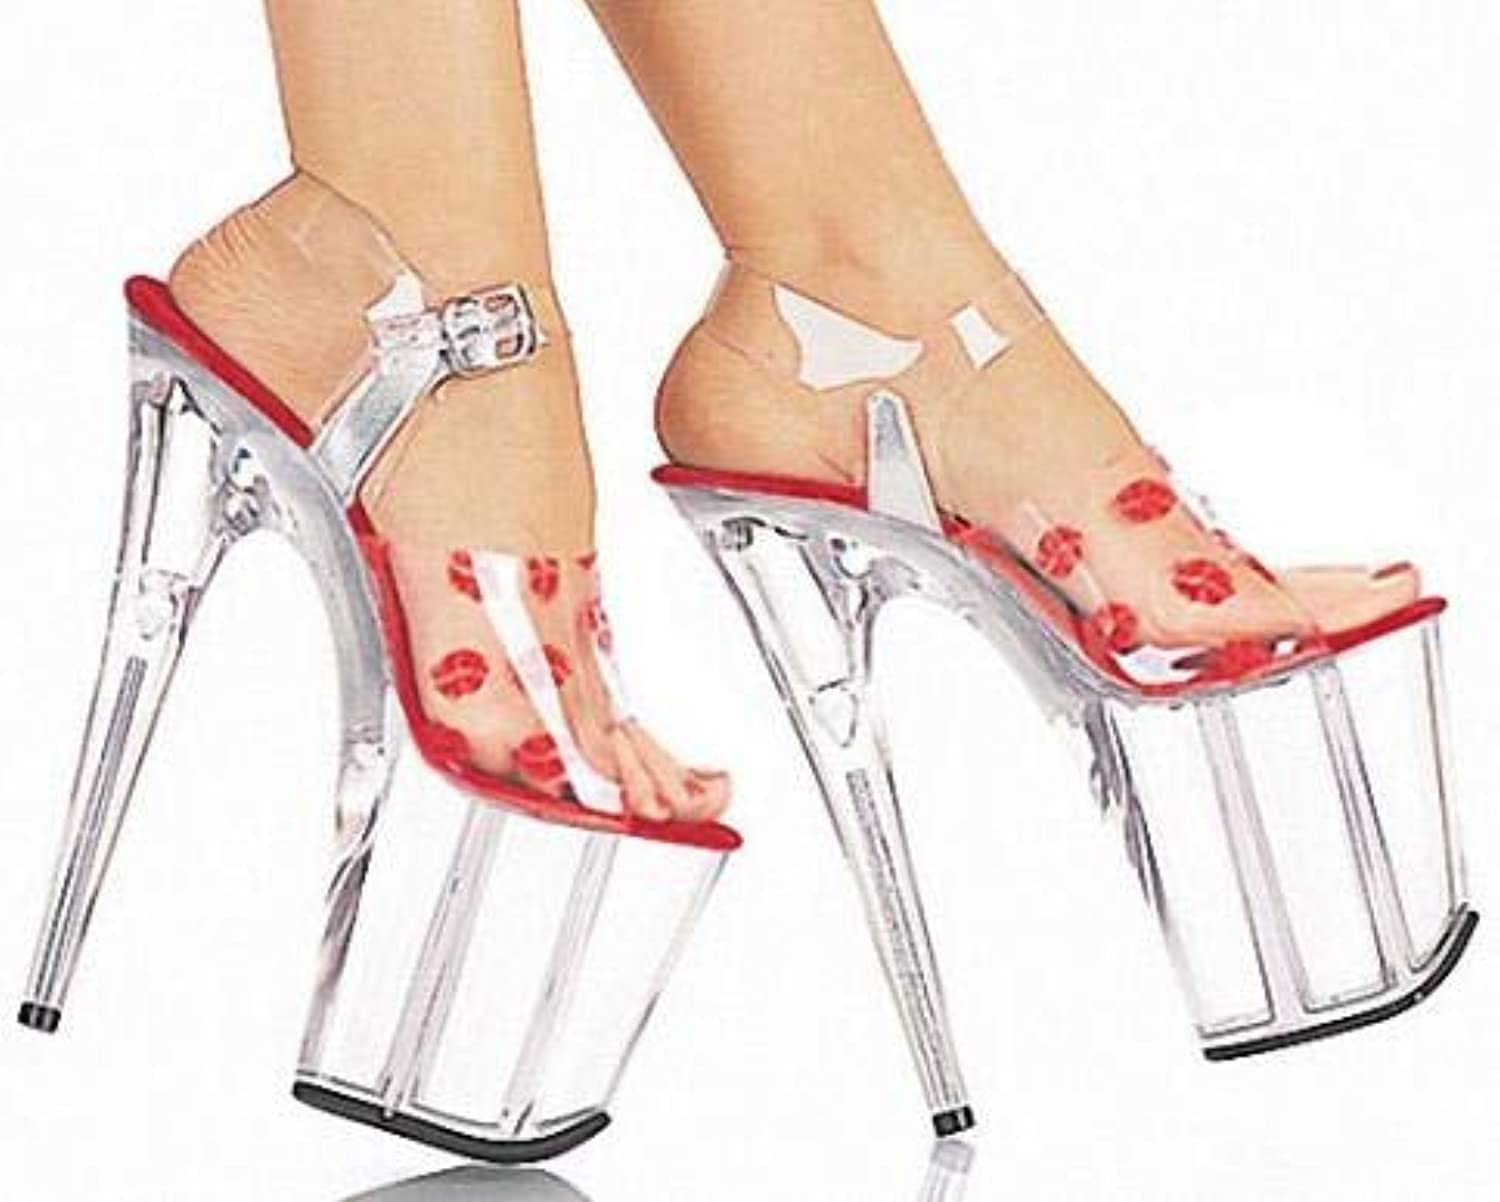 FairOnly South Korean Women's shoes, Sexy high Heel Sandals Lips Sexy Sandals, Pole Dancing Performance Bride Photo Dance shoes E012